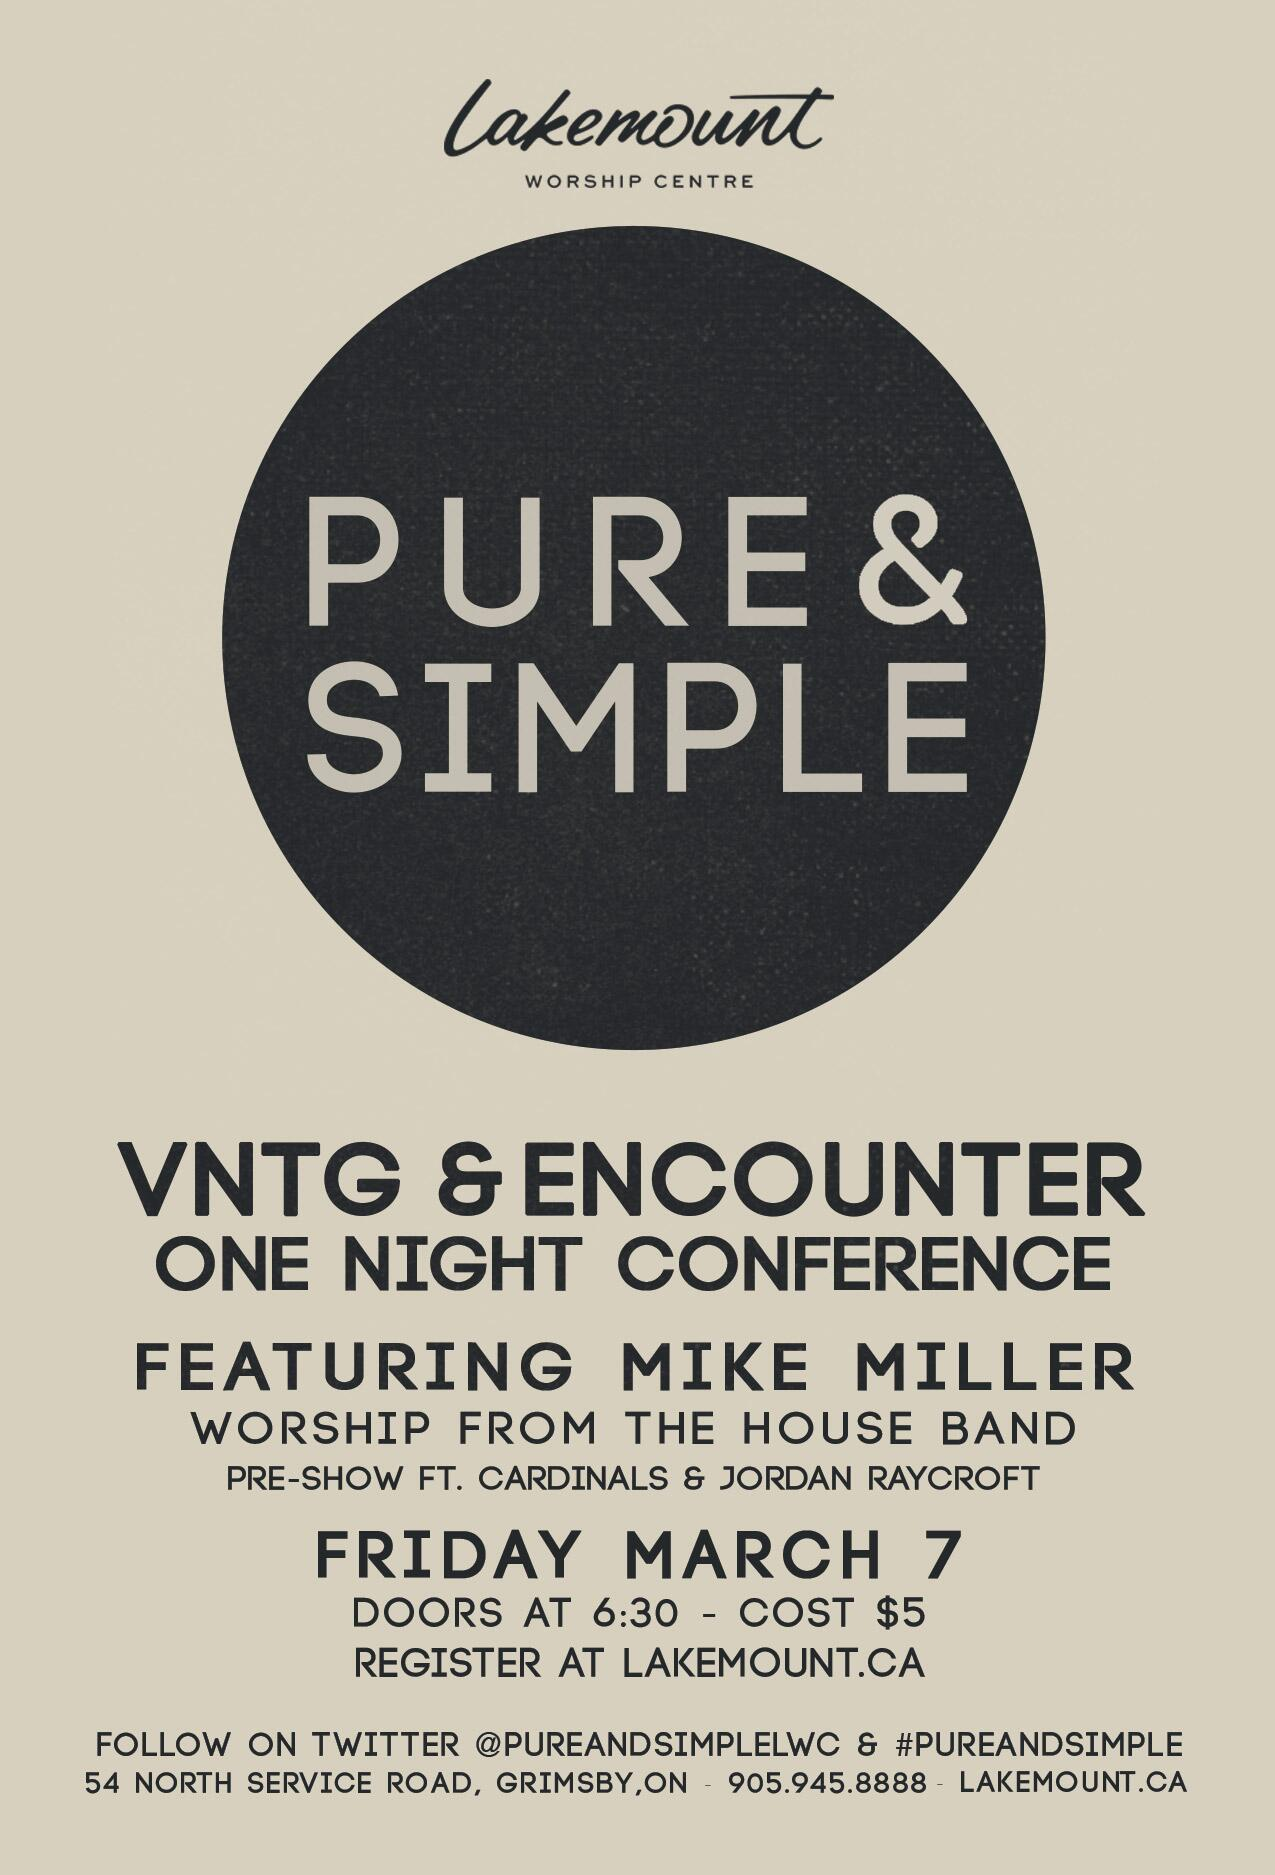 Spread the word! Pure & Simple  March 7, 2014 http://t.co/ZbKK6zuuzE